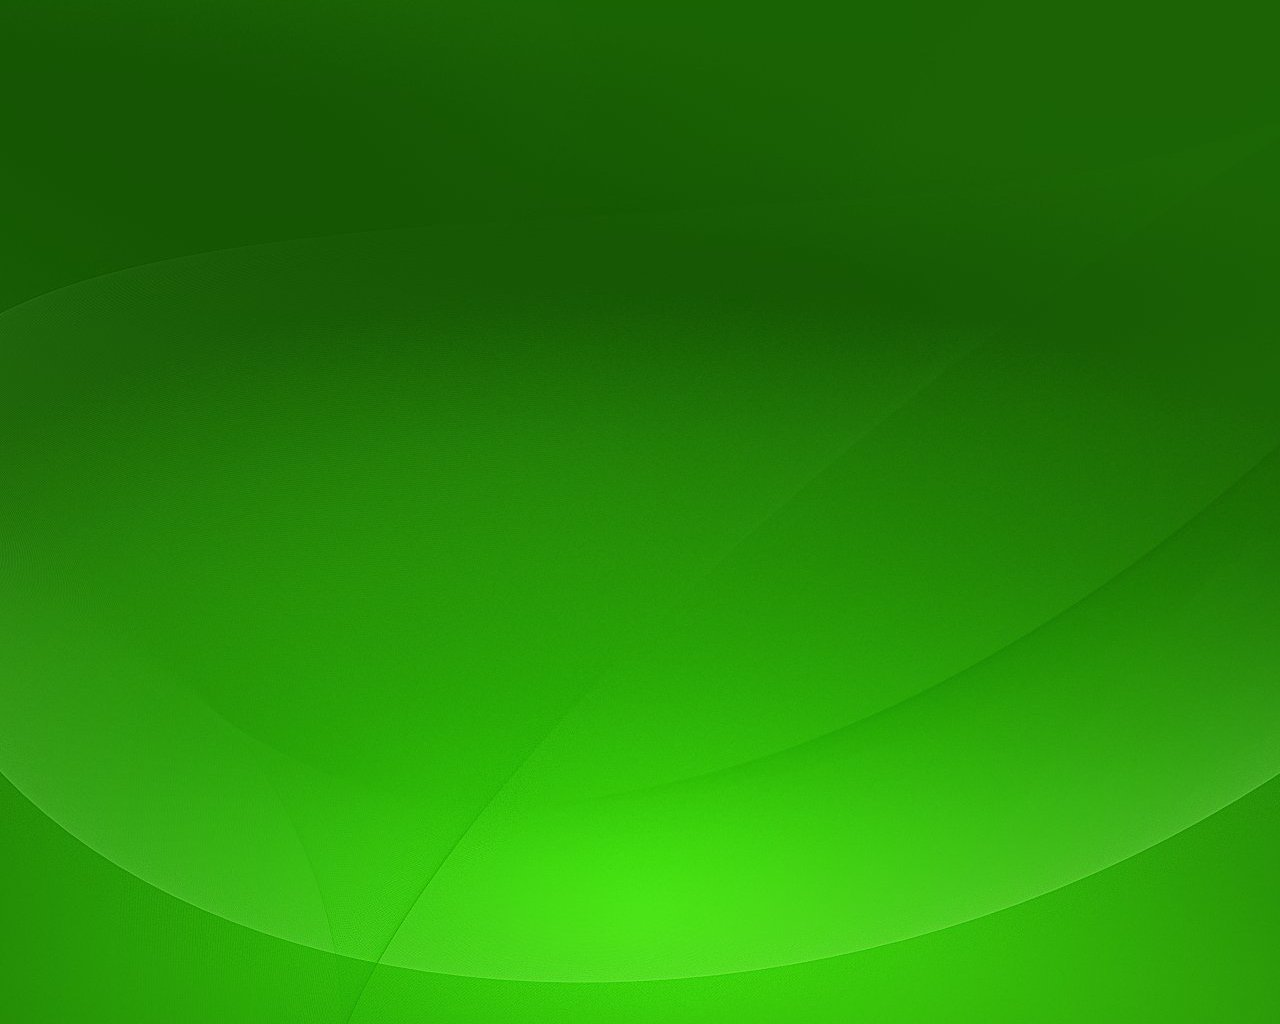 Green Simple Green